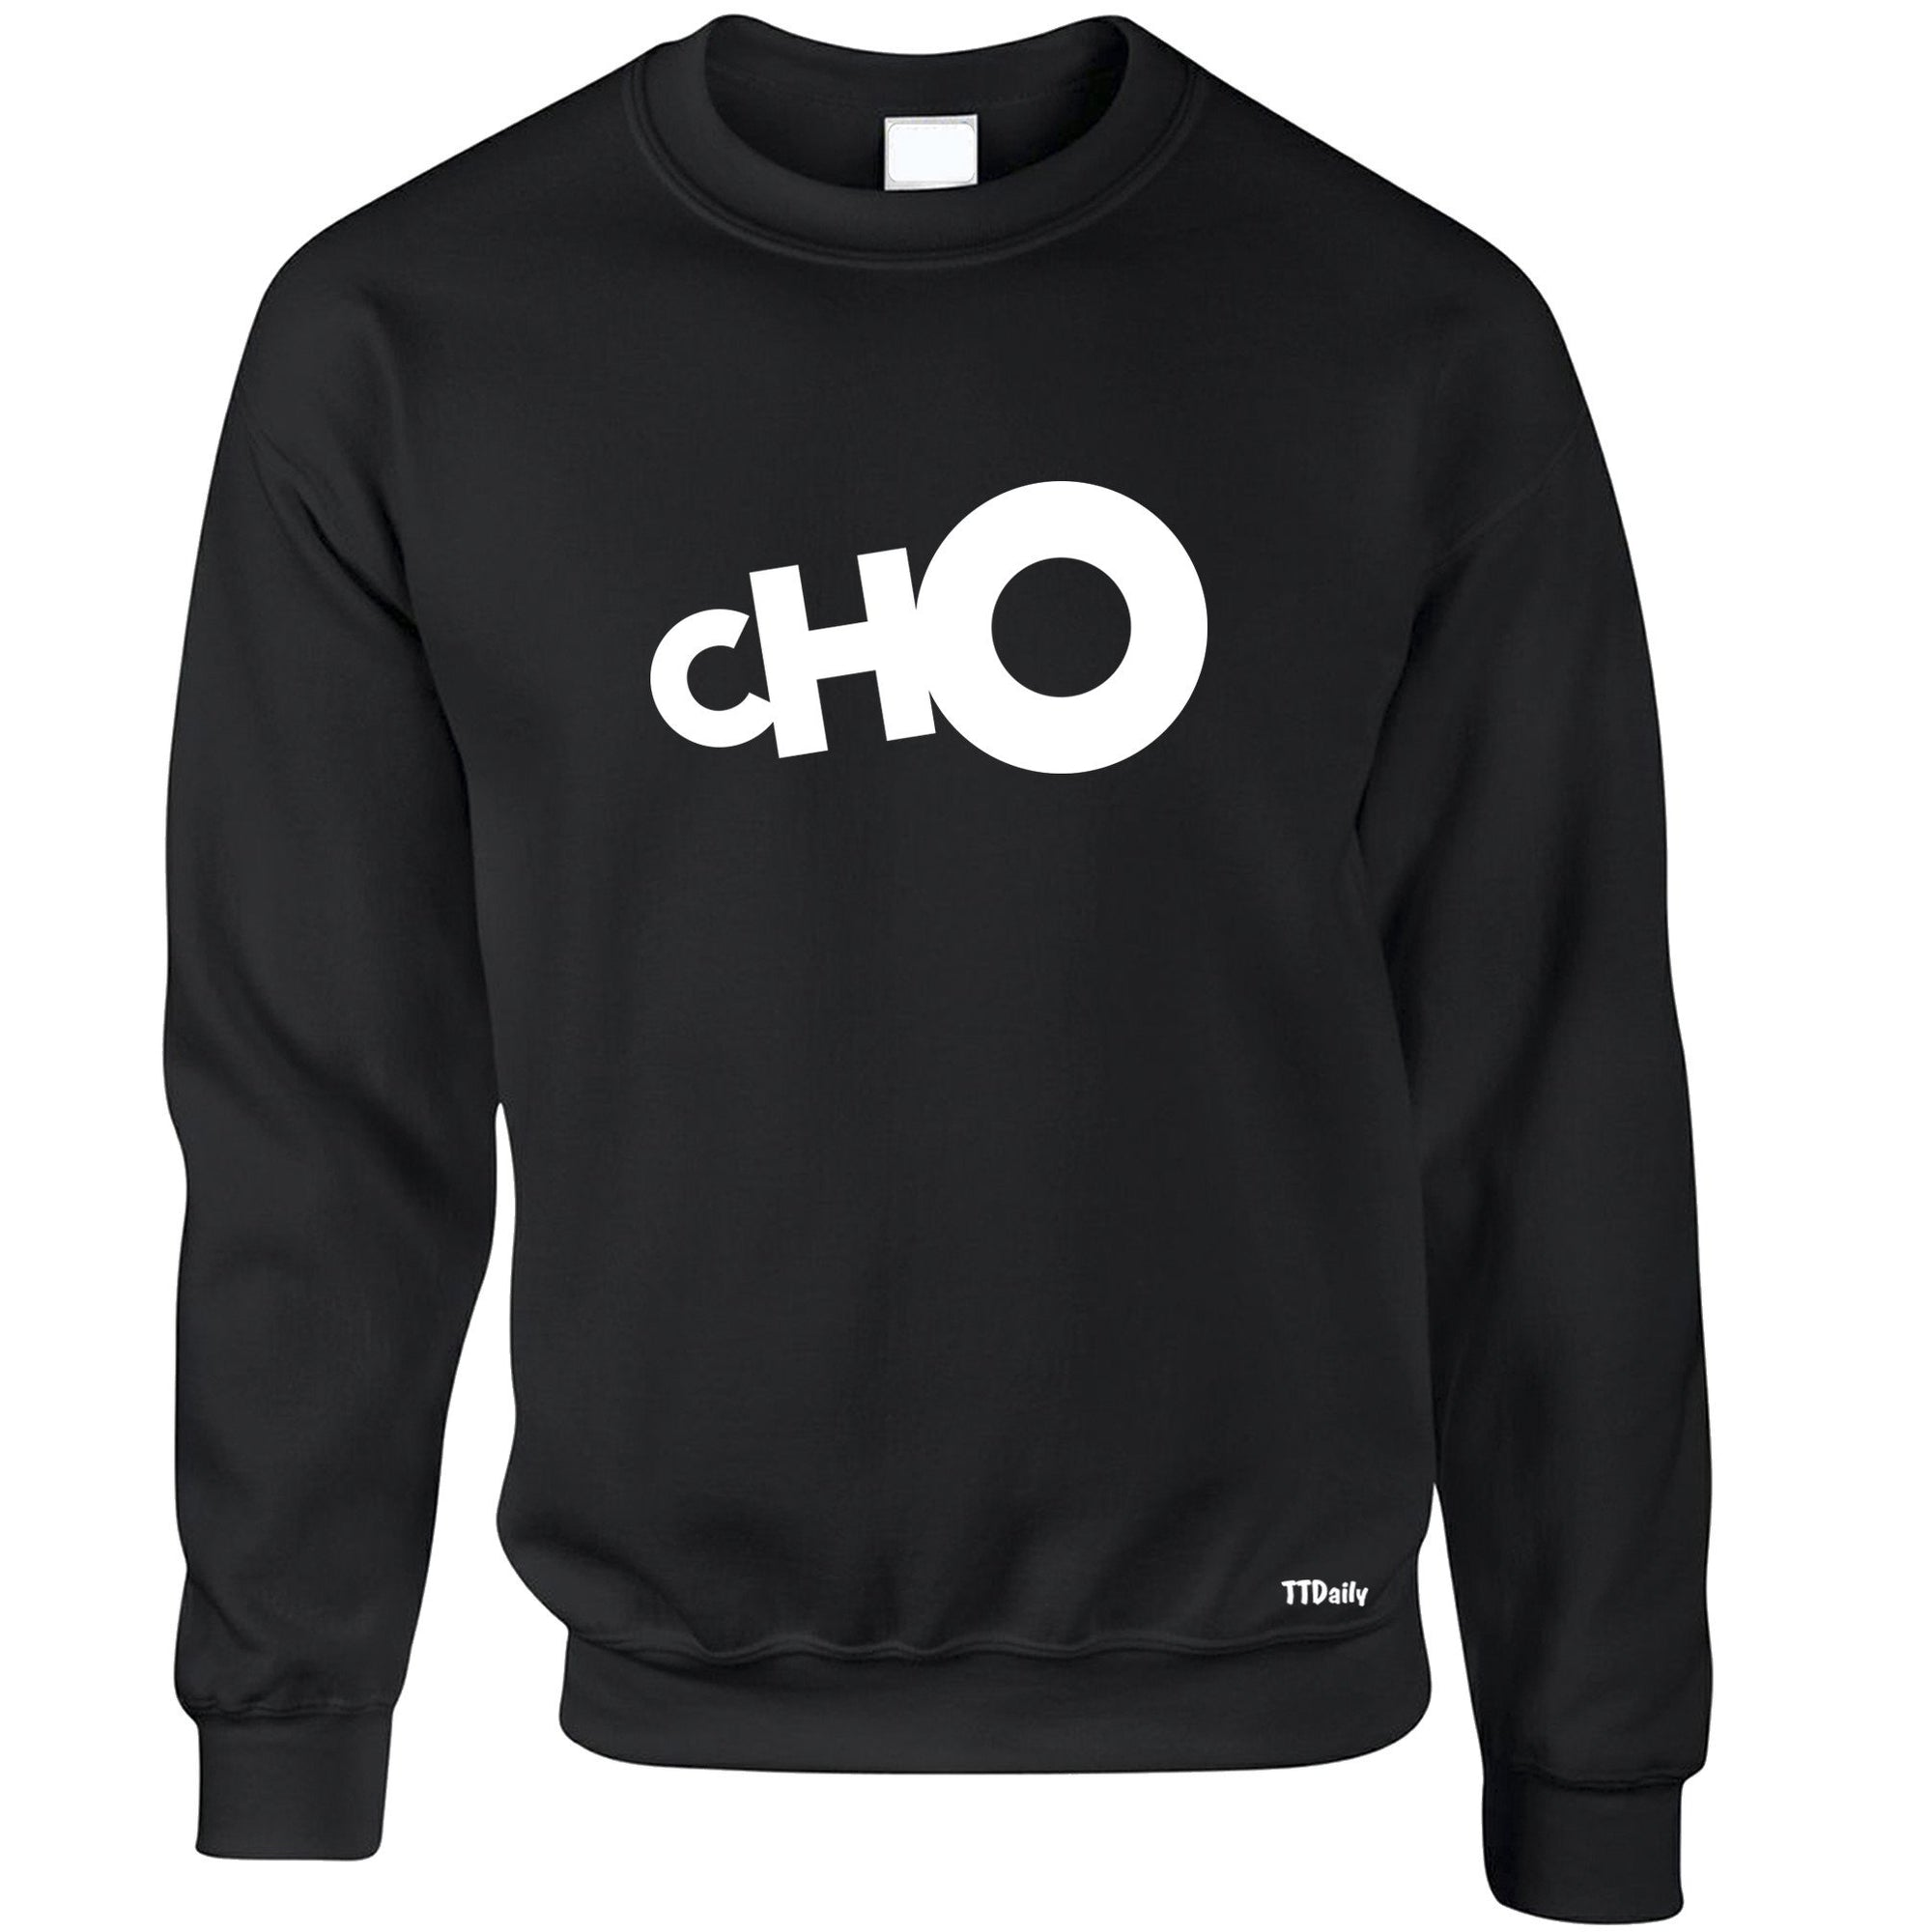 Table Tennis Jumper Cho Shout Point Win Ping Pong Sweatshirt Sweater